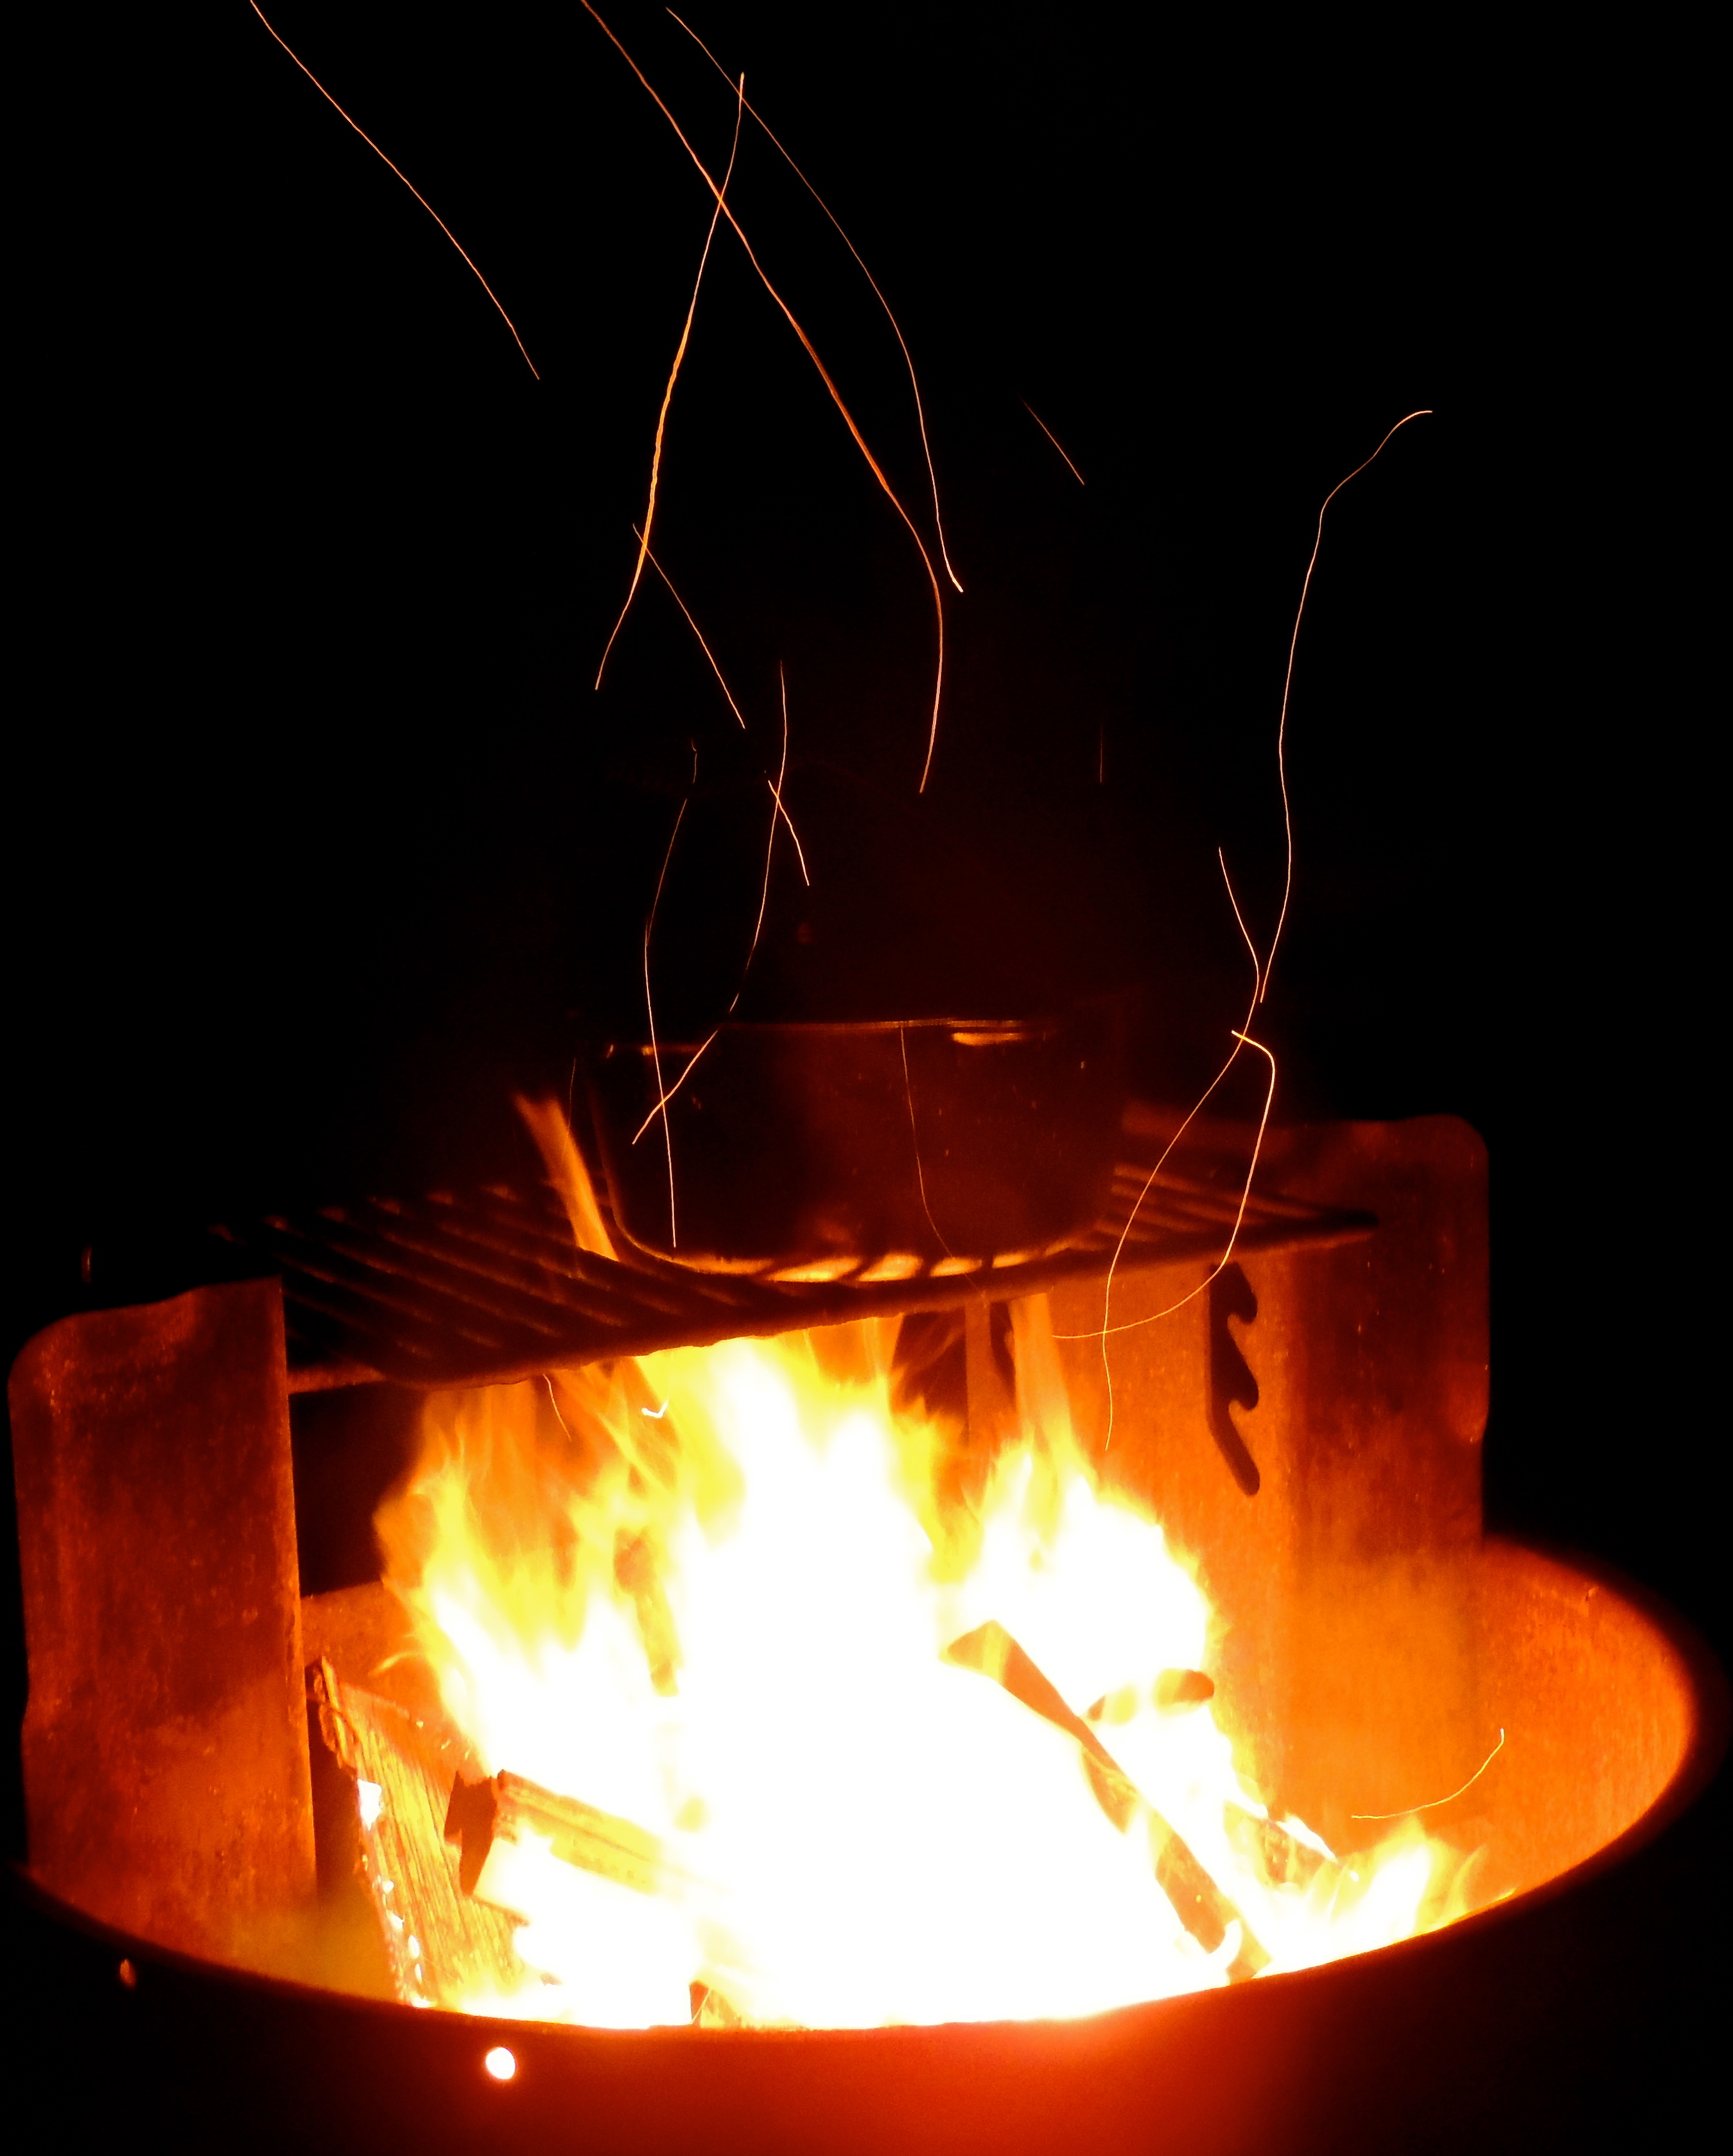 Long winter nights lend themselves to fire and meals from the oven.